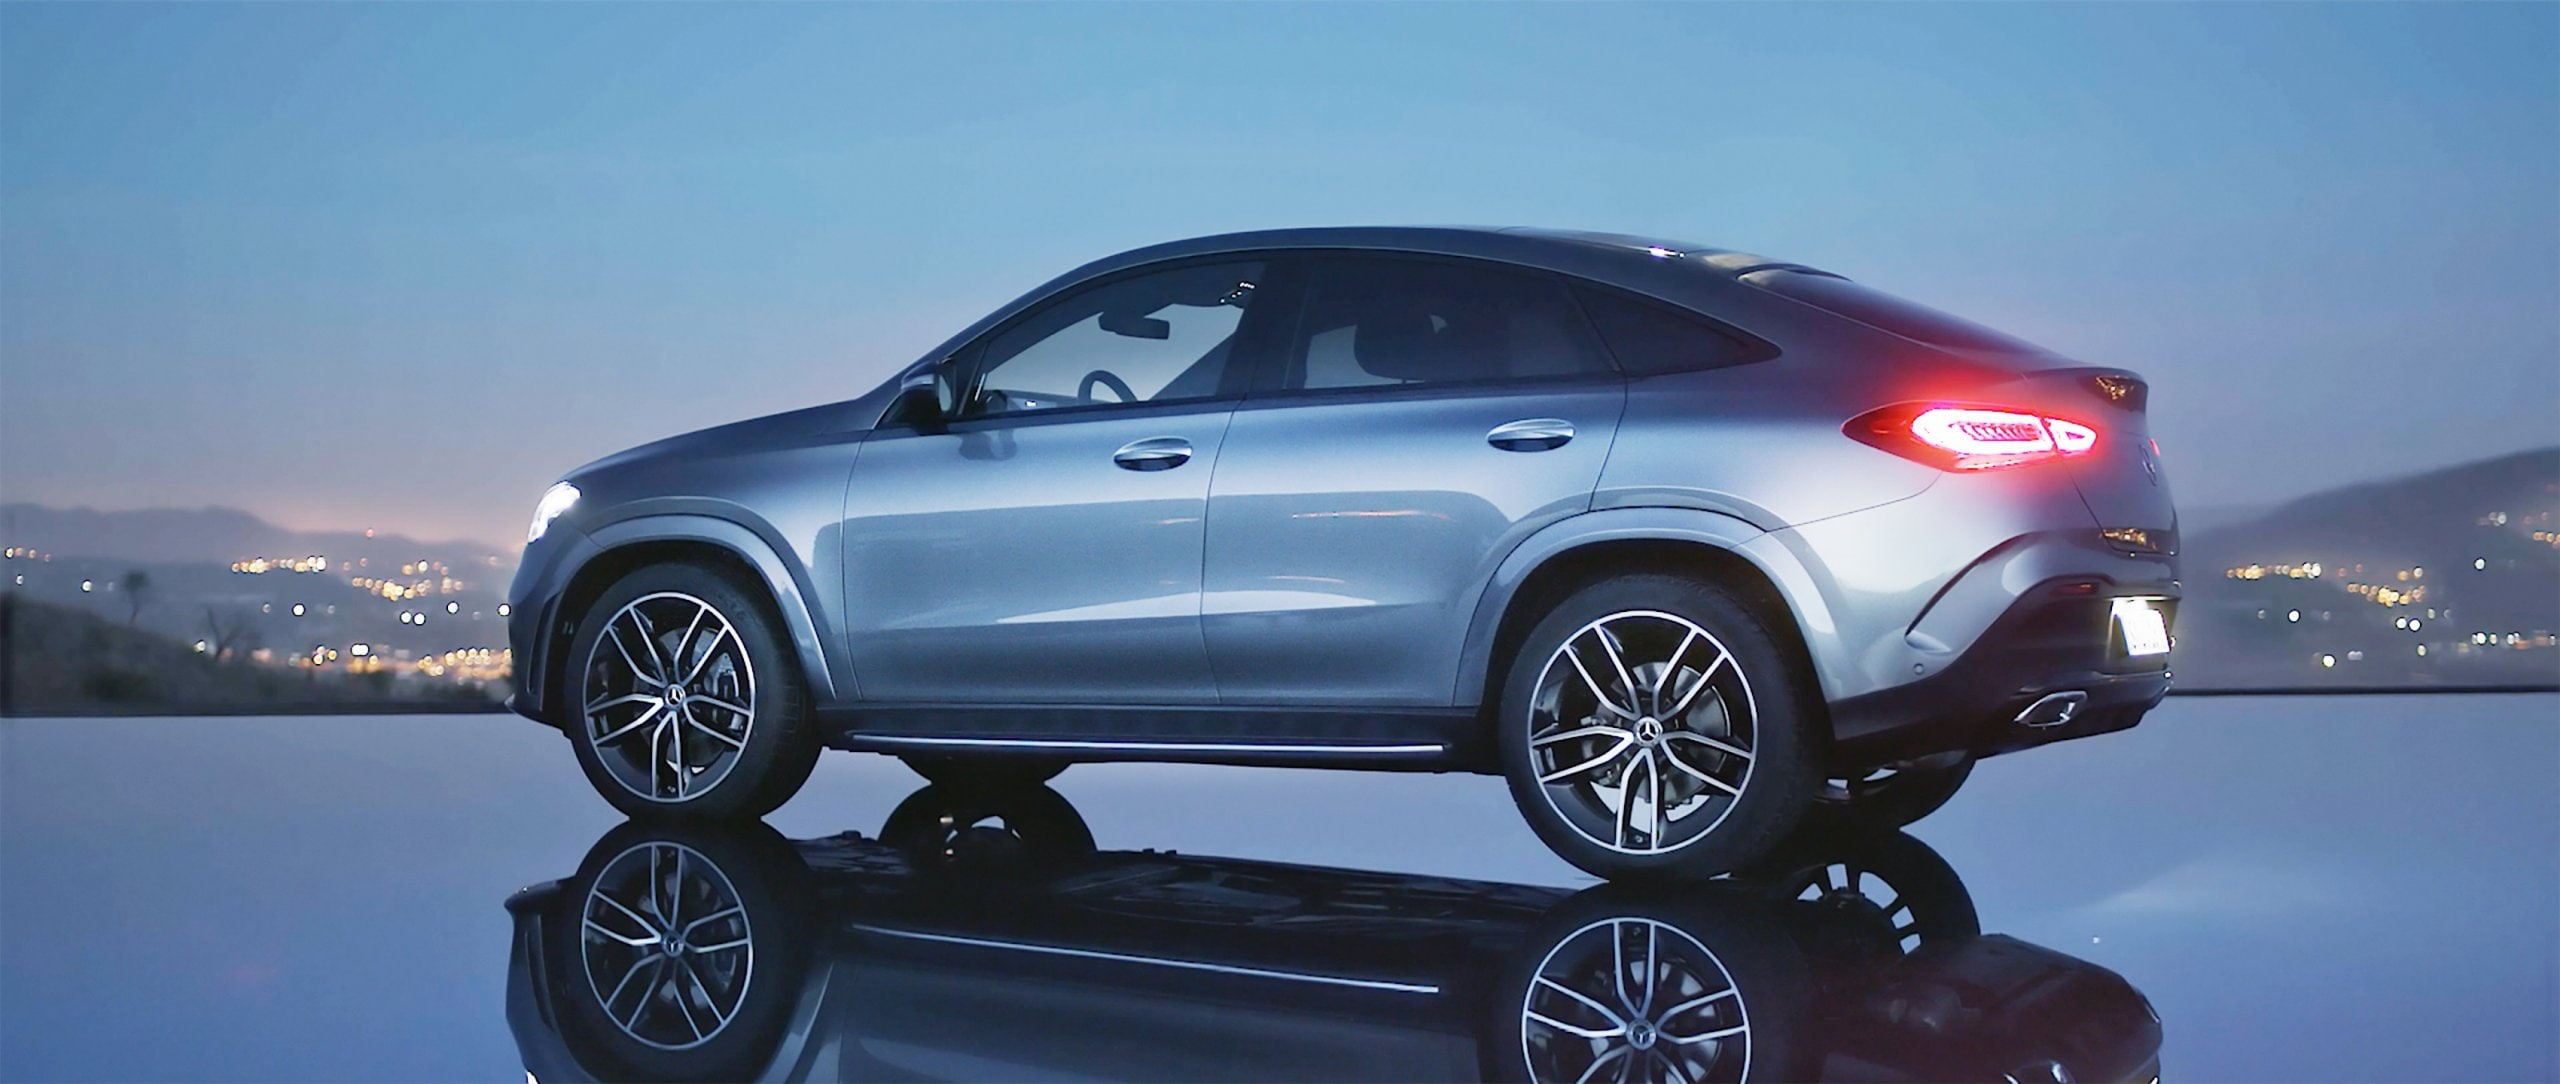 Mercedes Benz Gle Coupe 2020 Design Features